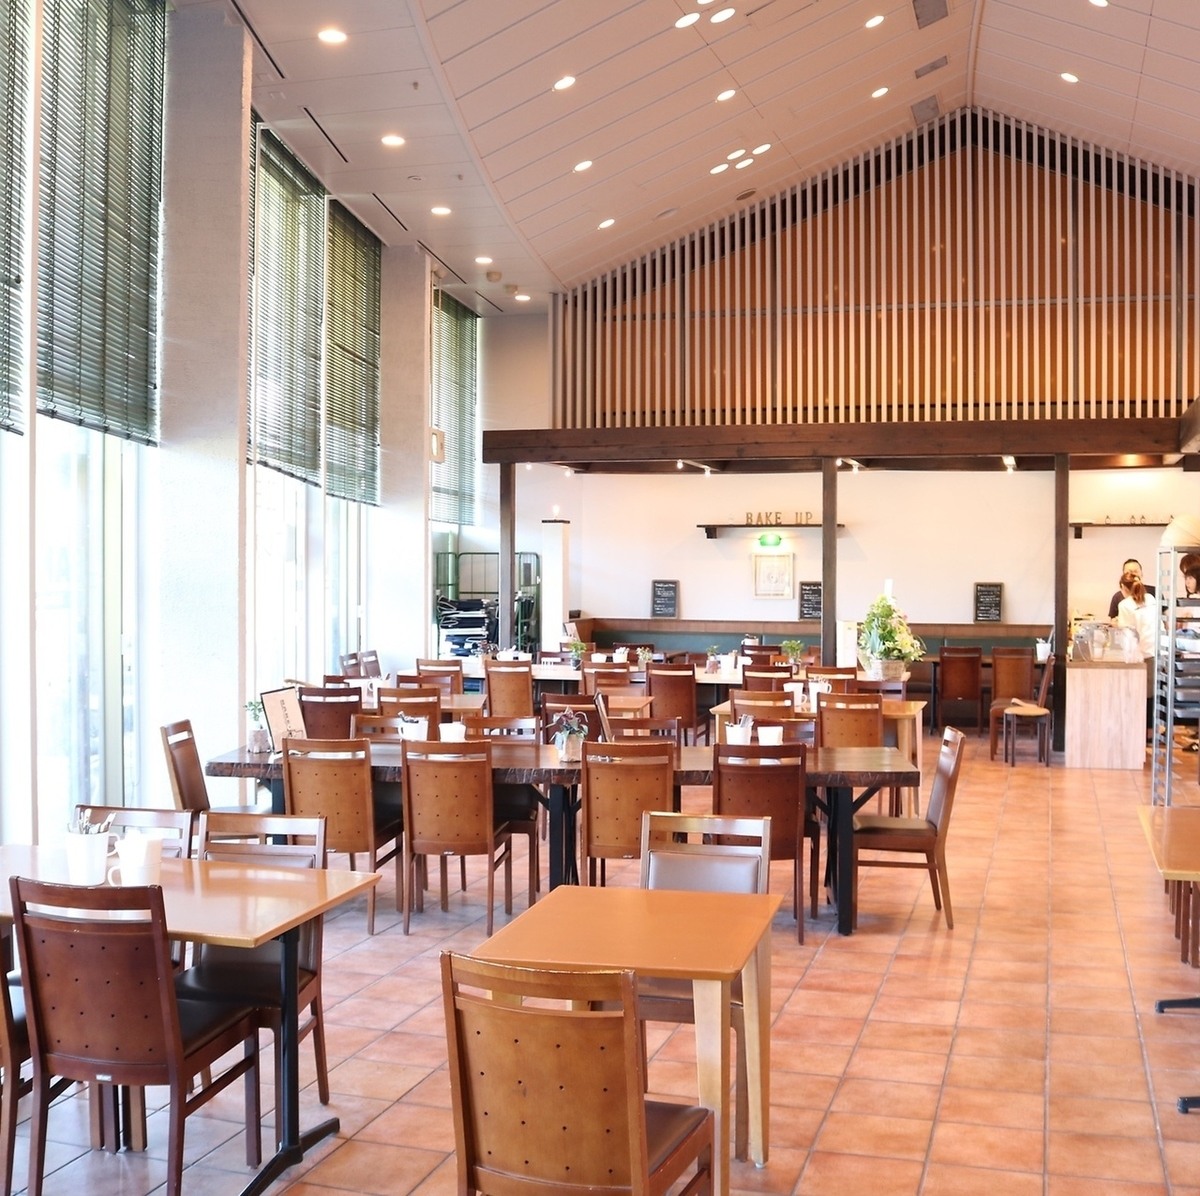 【Toriyagogi Park seen from a big window】 You can enjoy your meal while watching the scenery outside ♪